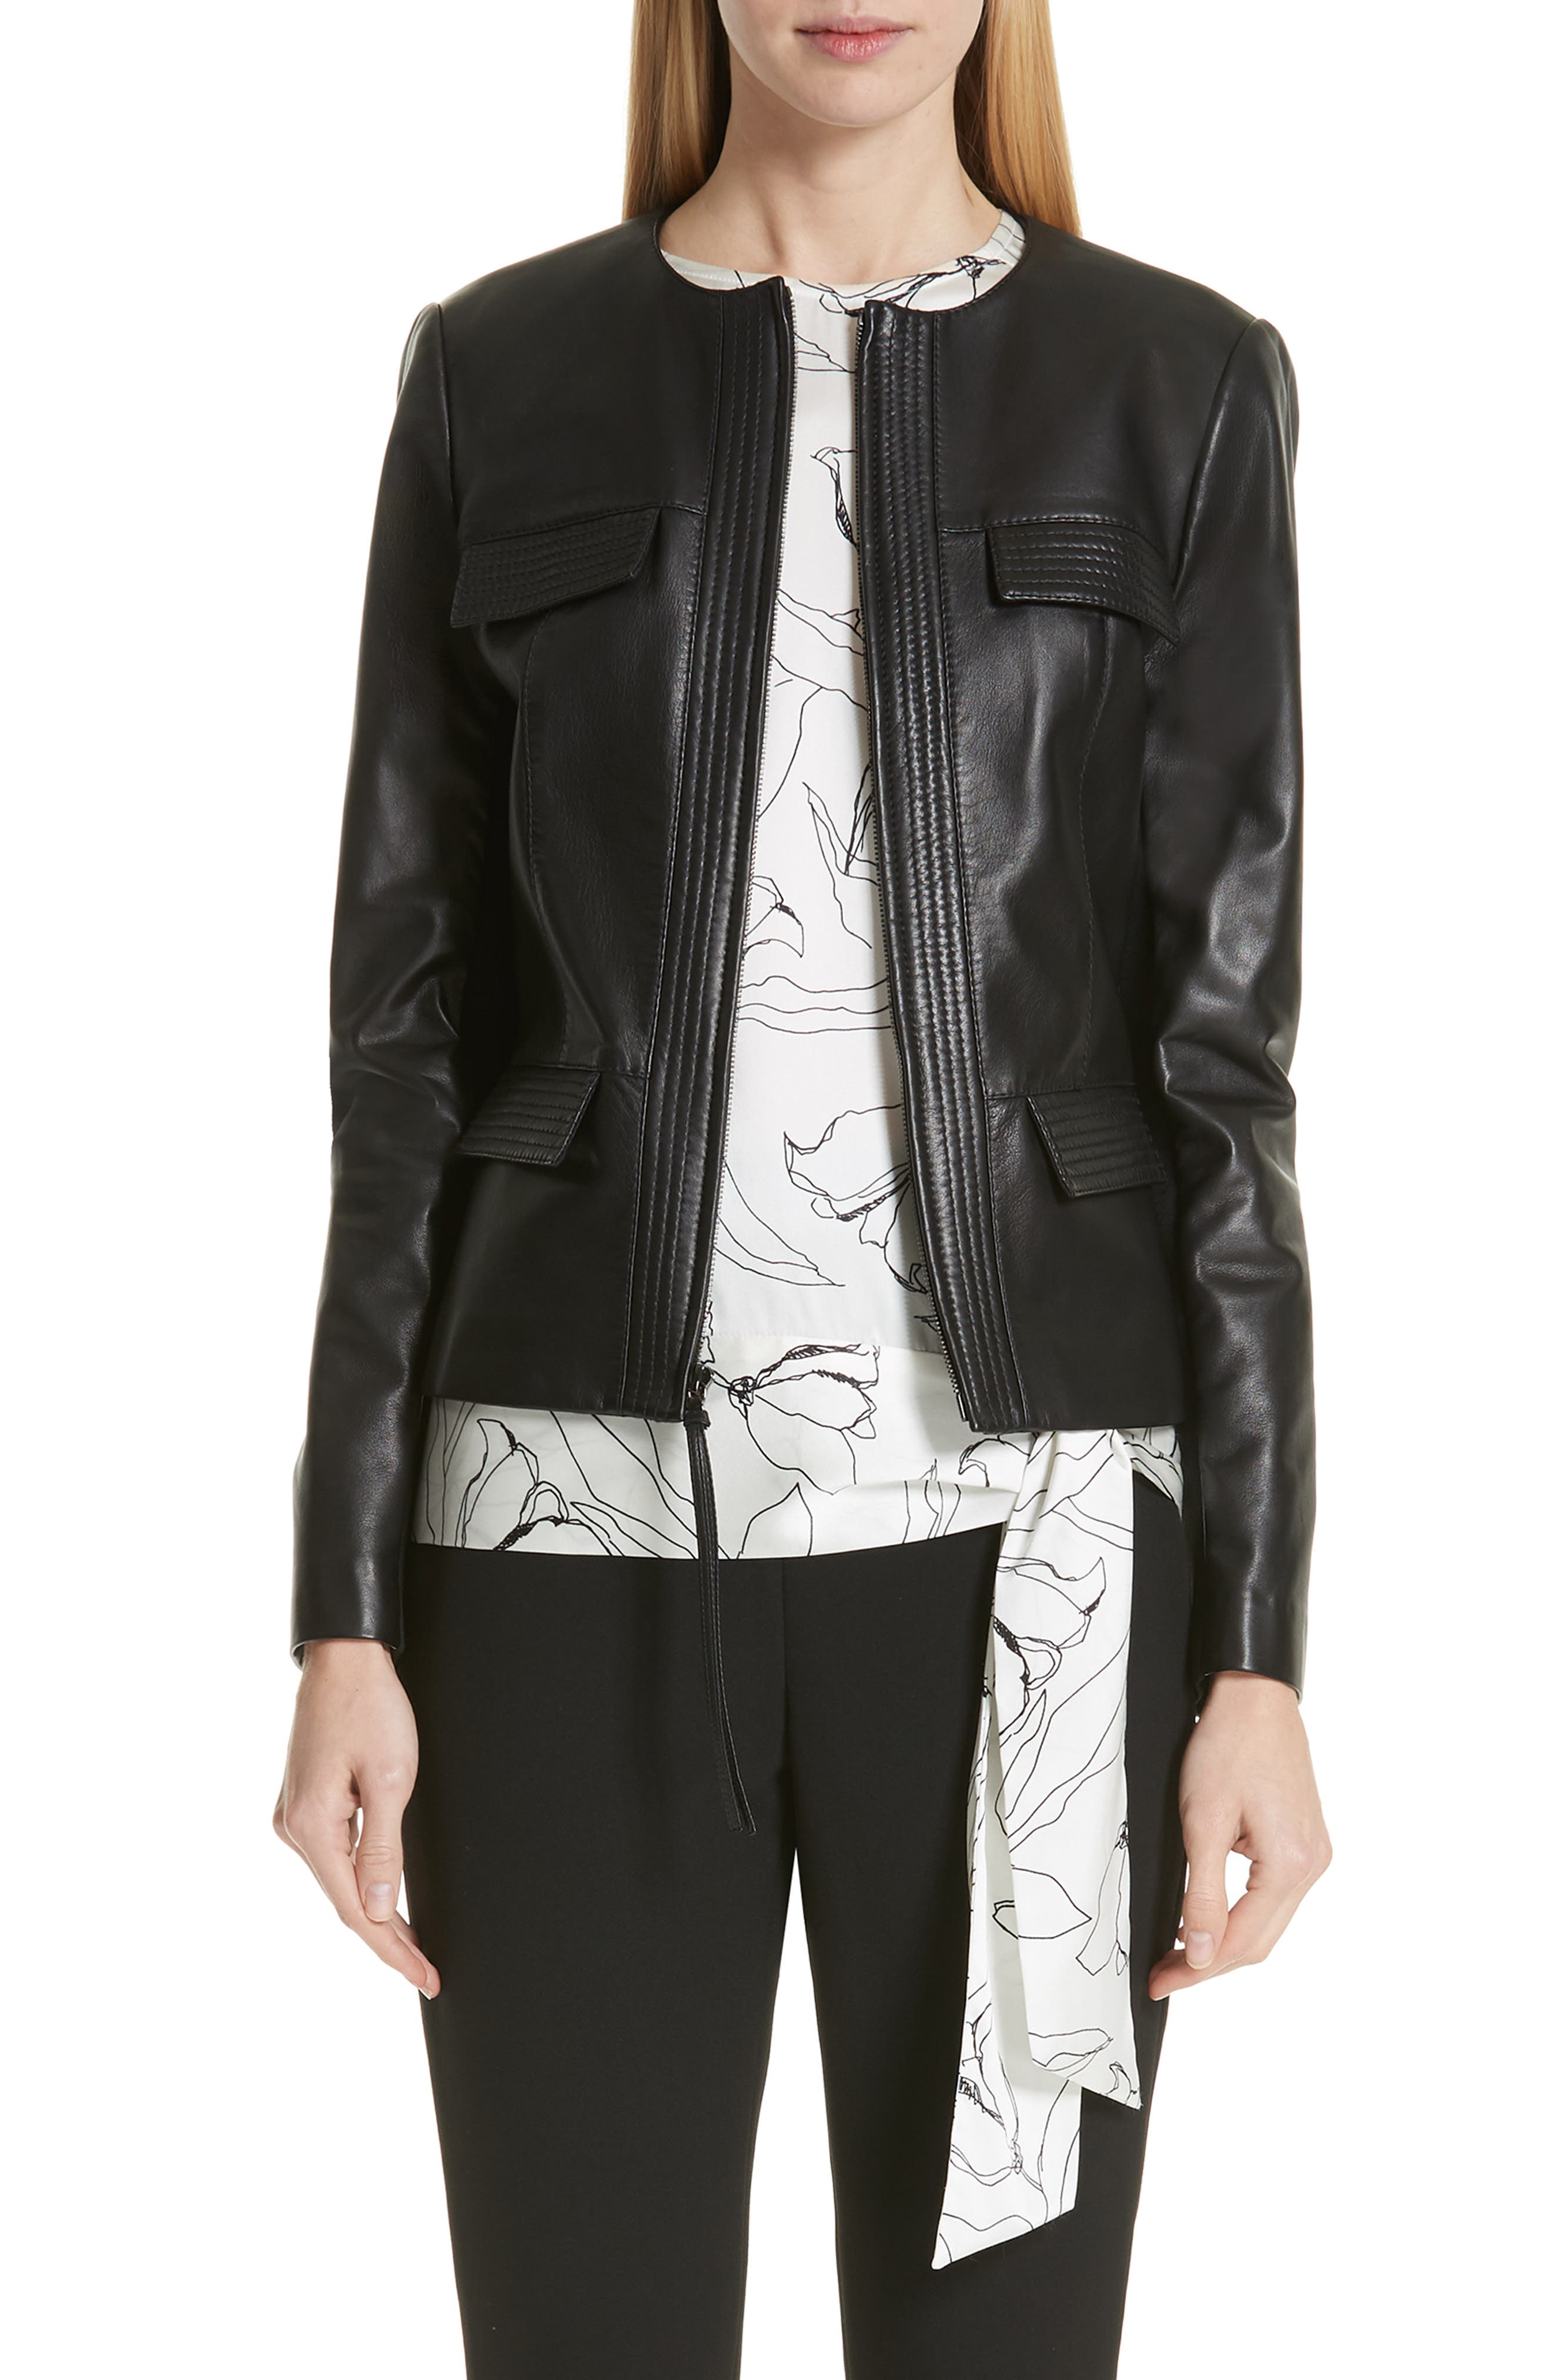 ST. JOHN COLLECTION, Luxe Nappa Leather Jacket, Main thumbnail 1, color, CAVIAR